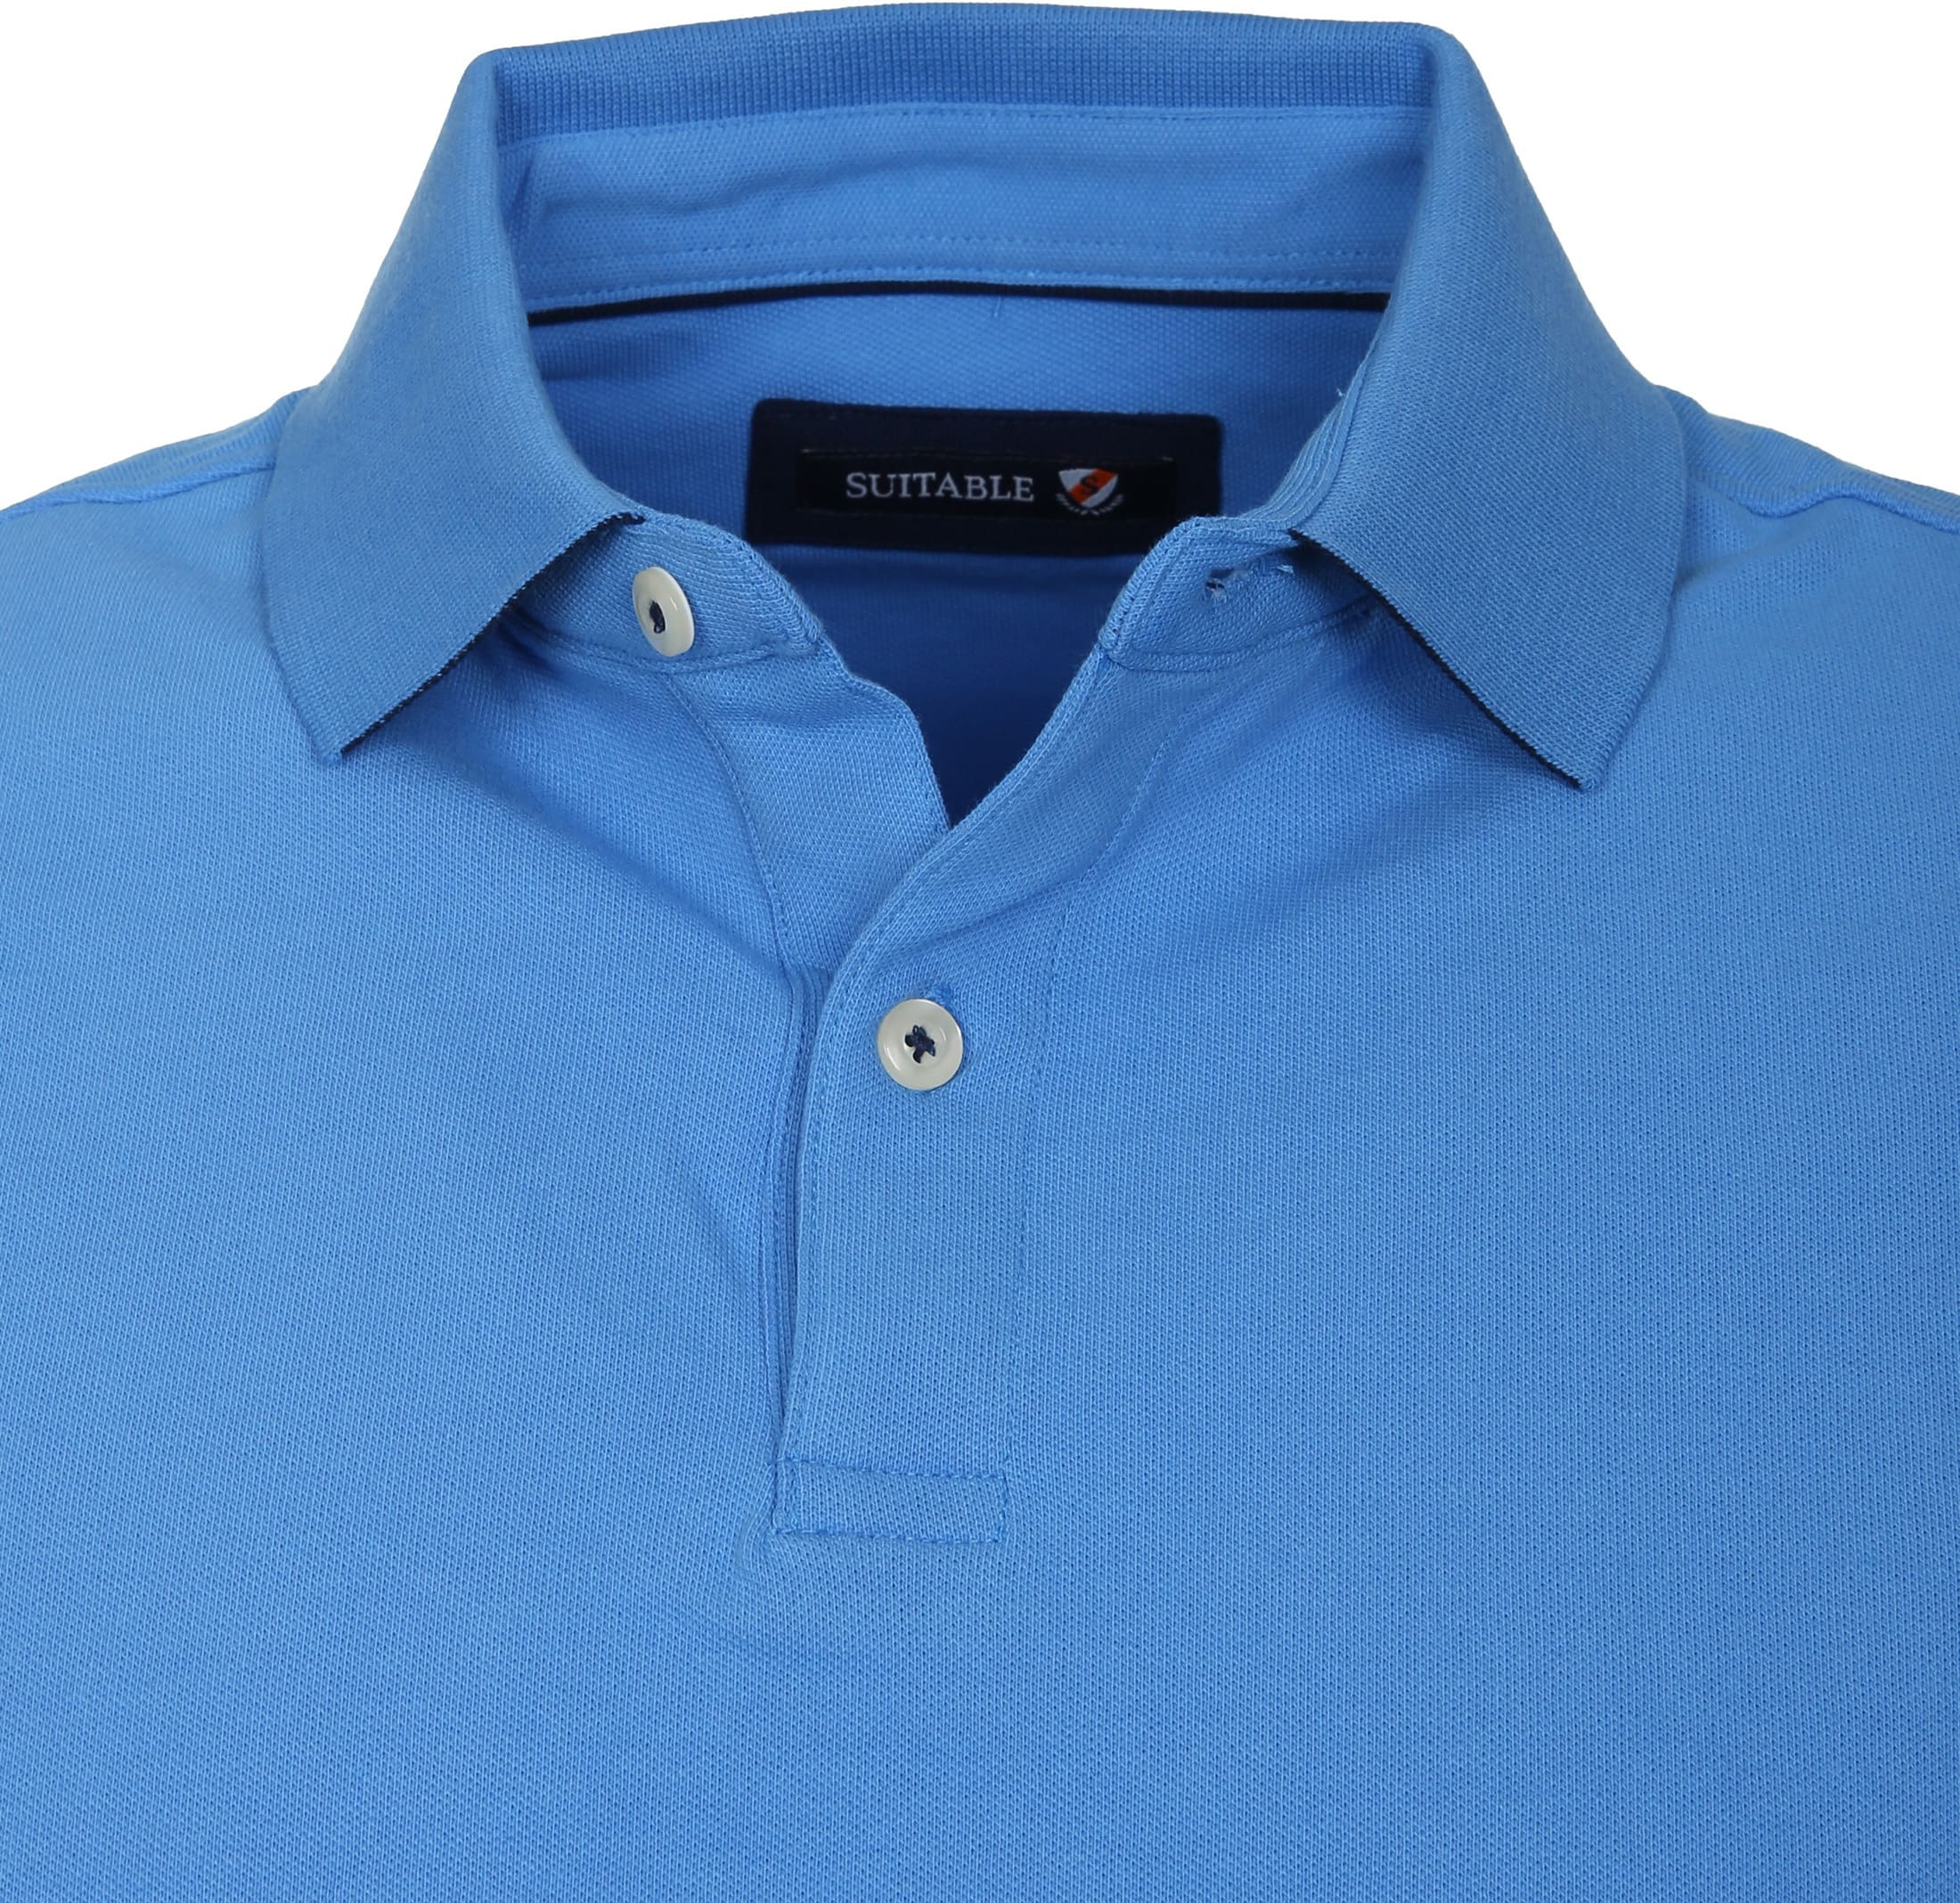 Suitable Poloshirt Basic Blau foto 1